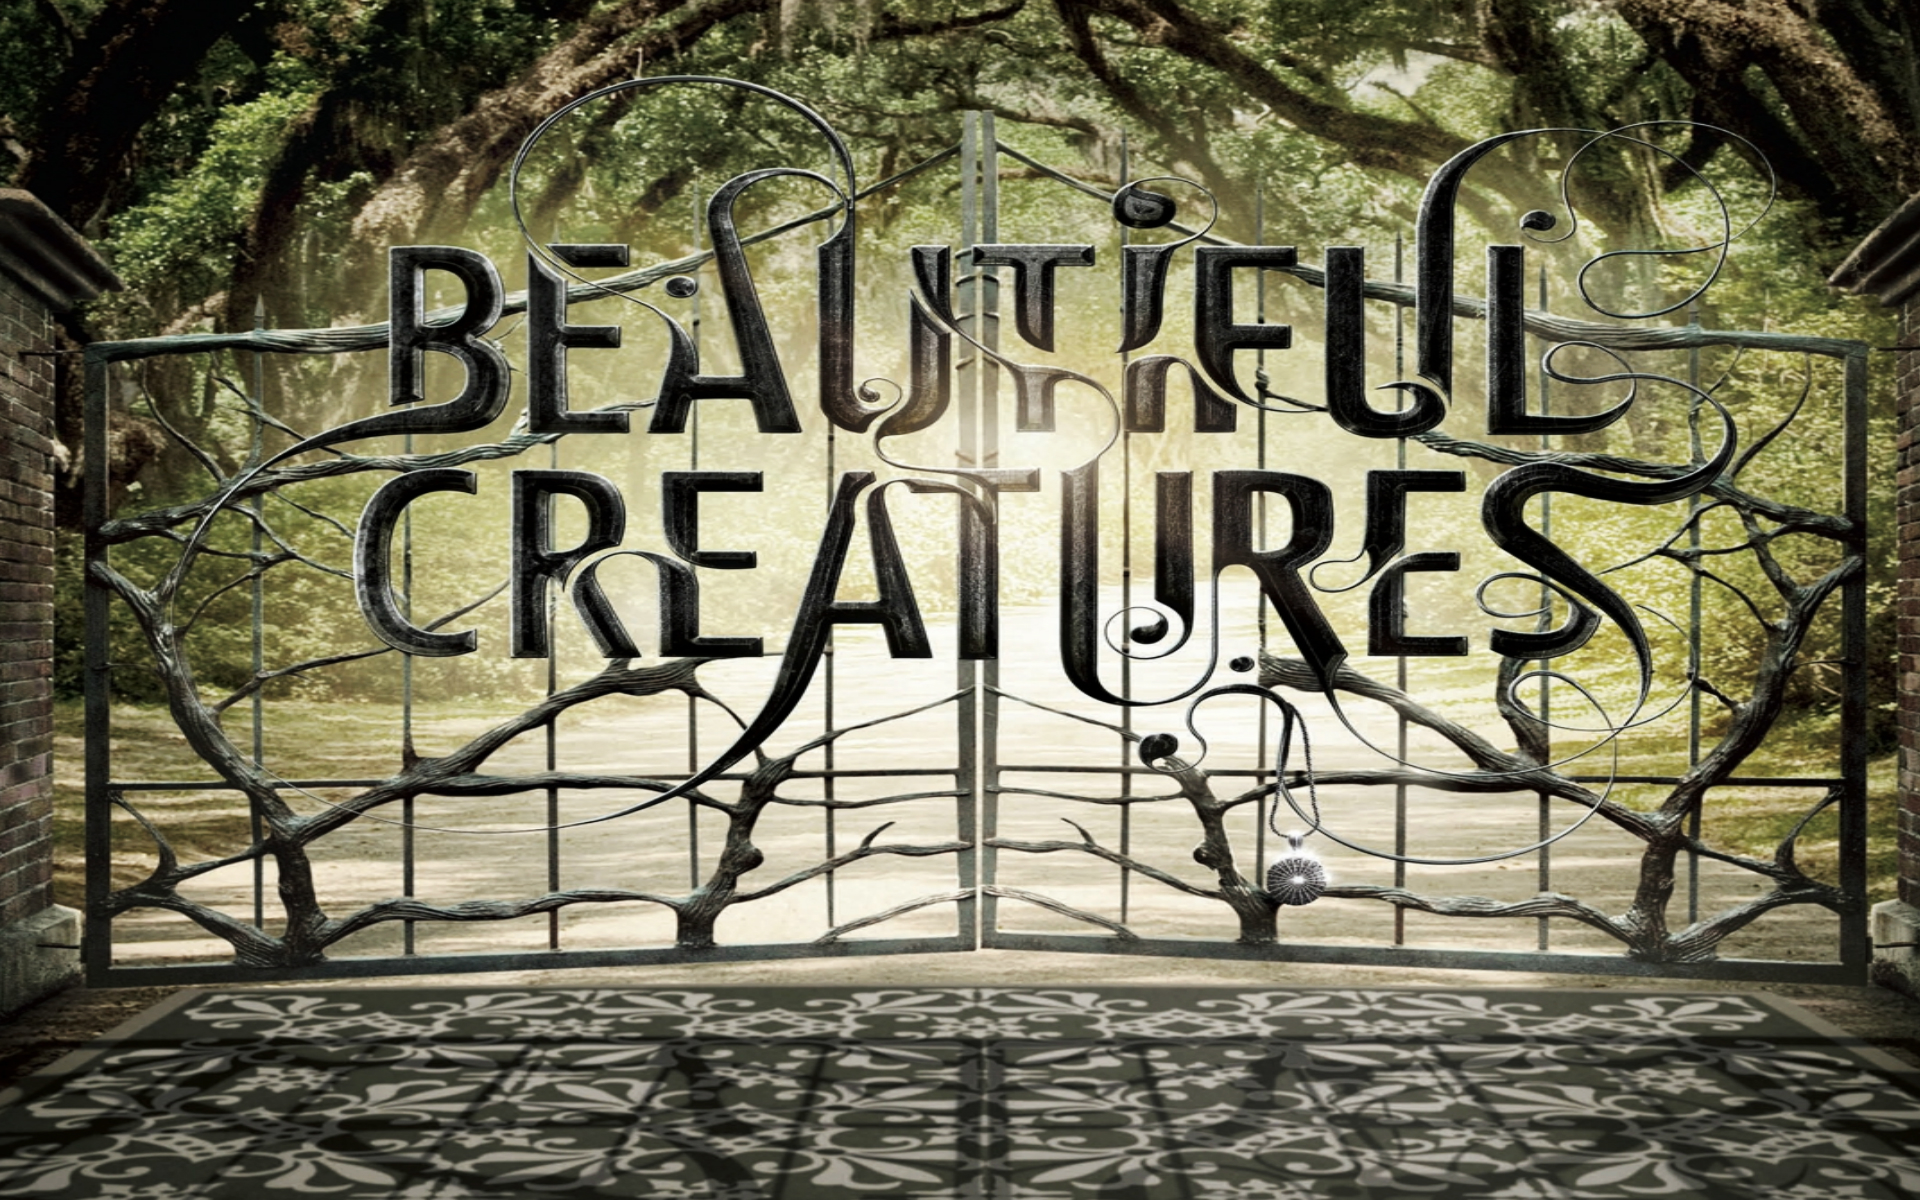 Beautiful Creatures Movie Hd Wallpapers And Character